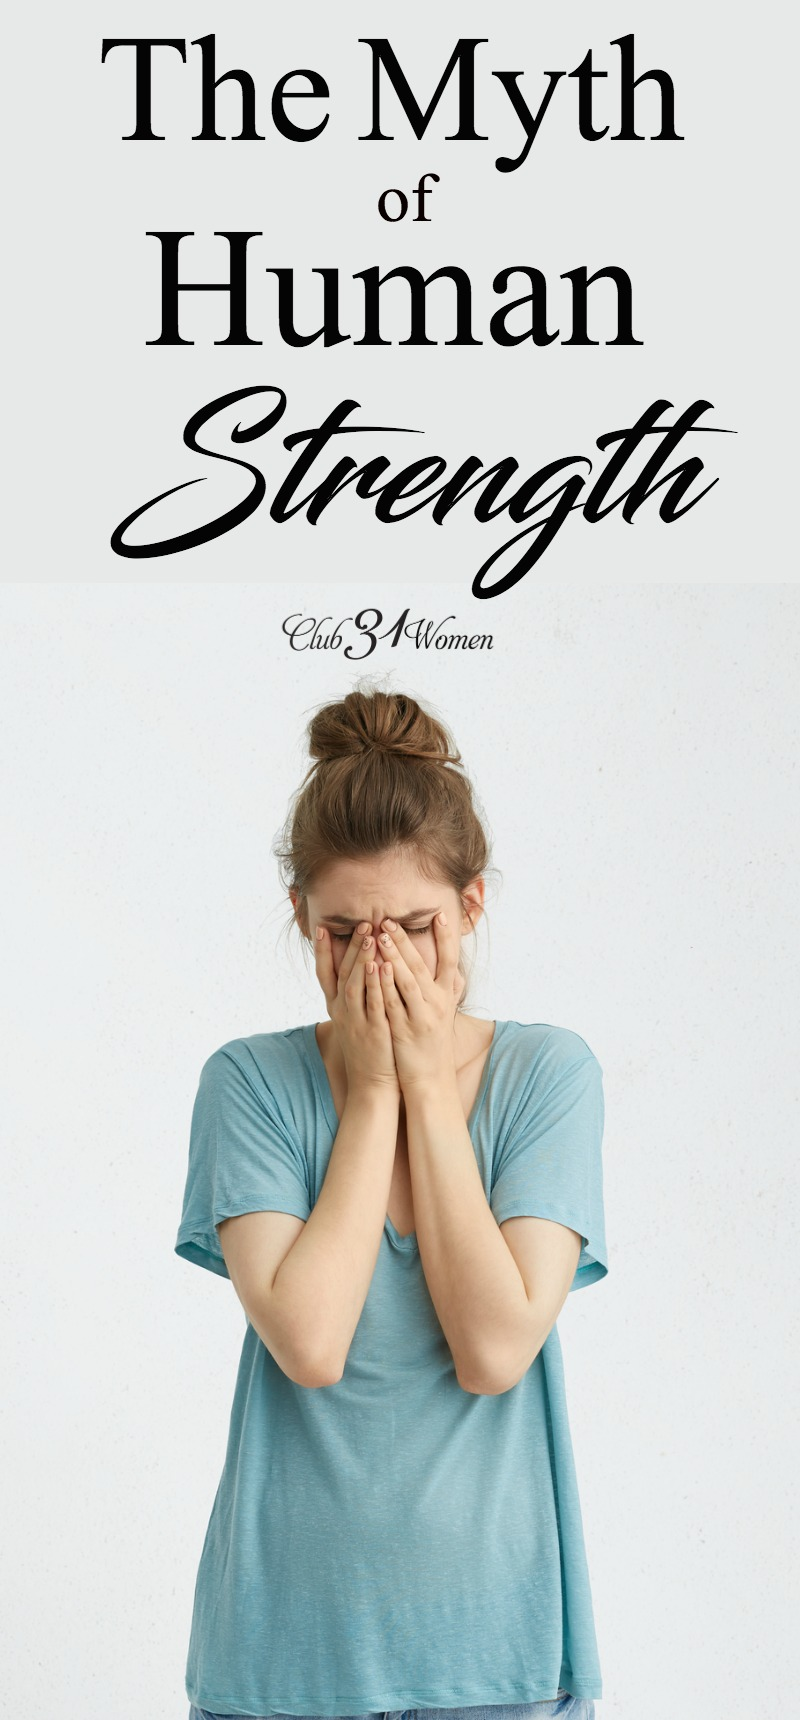 What happens when we admit that we are weak? That we can only rely on and walk in His strength for His glory? This is our greatest access to Him. via @Club31Women